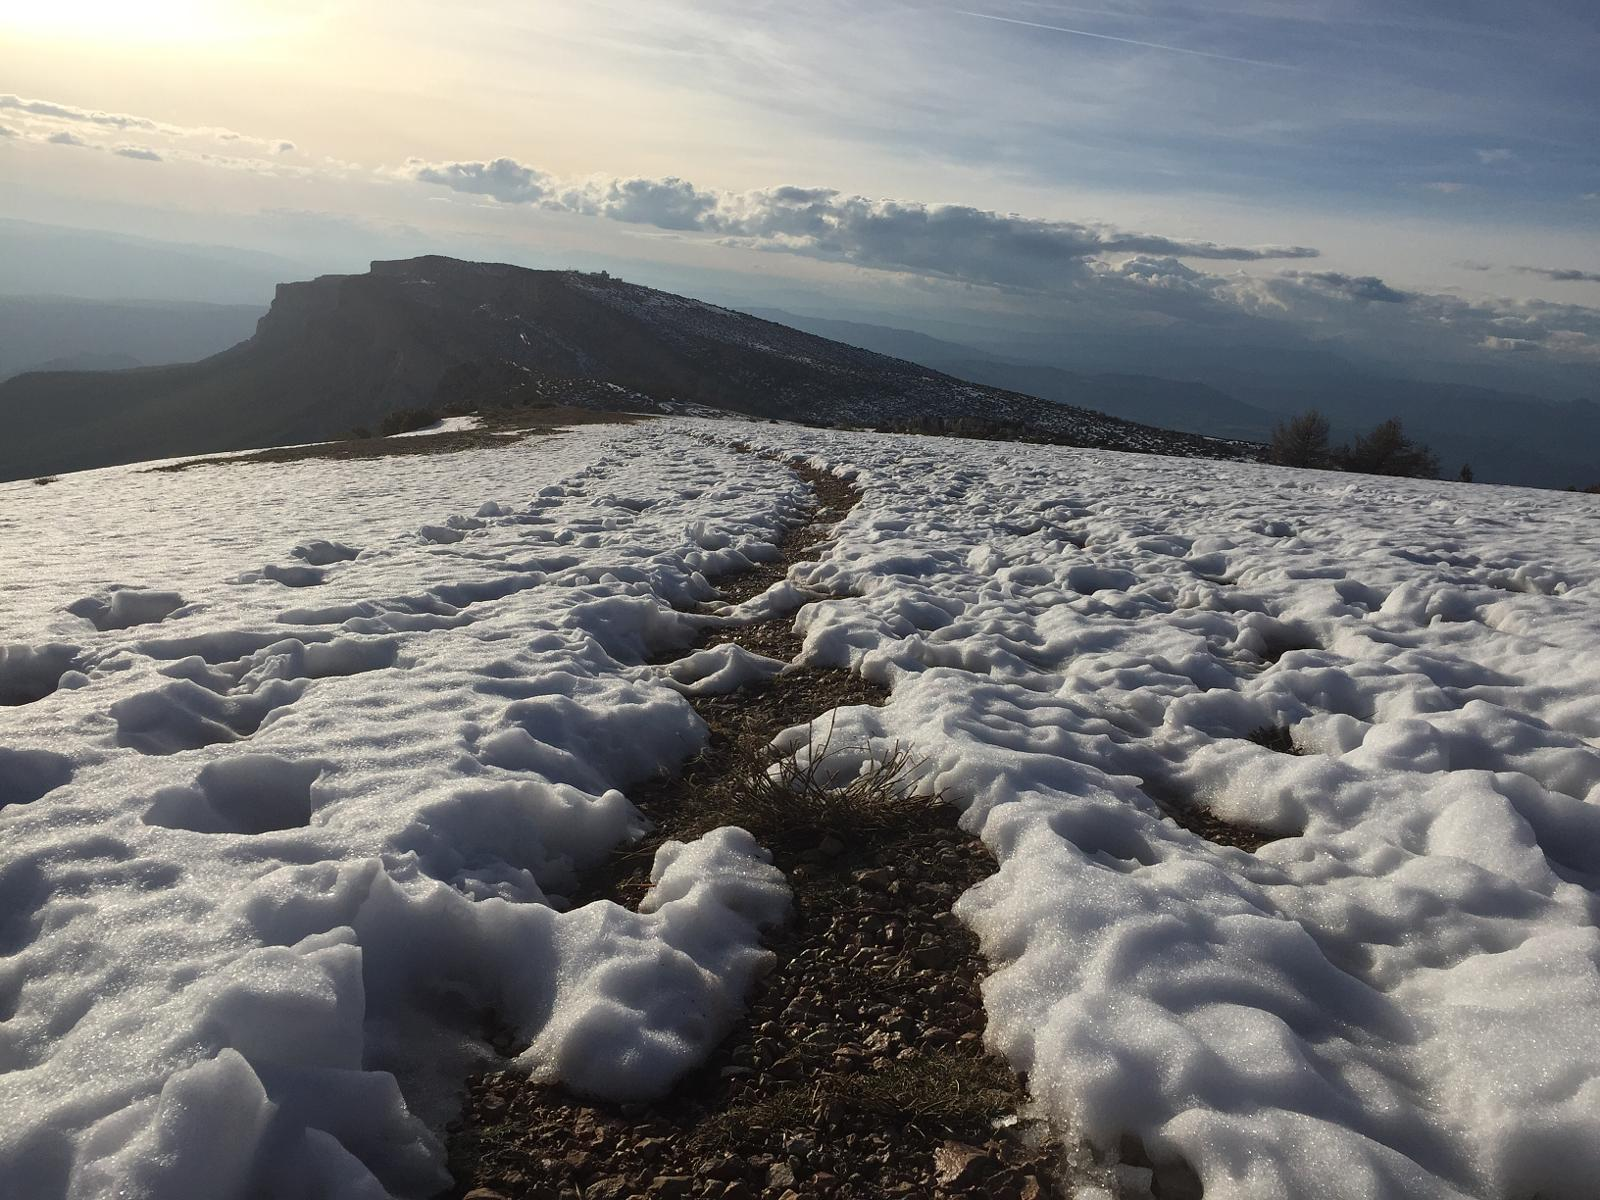 Photo of Montsec d'Ares nevat abril 2018